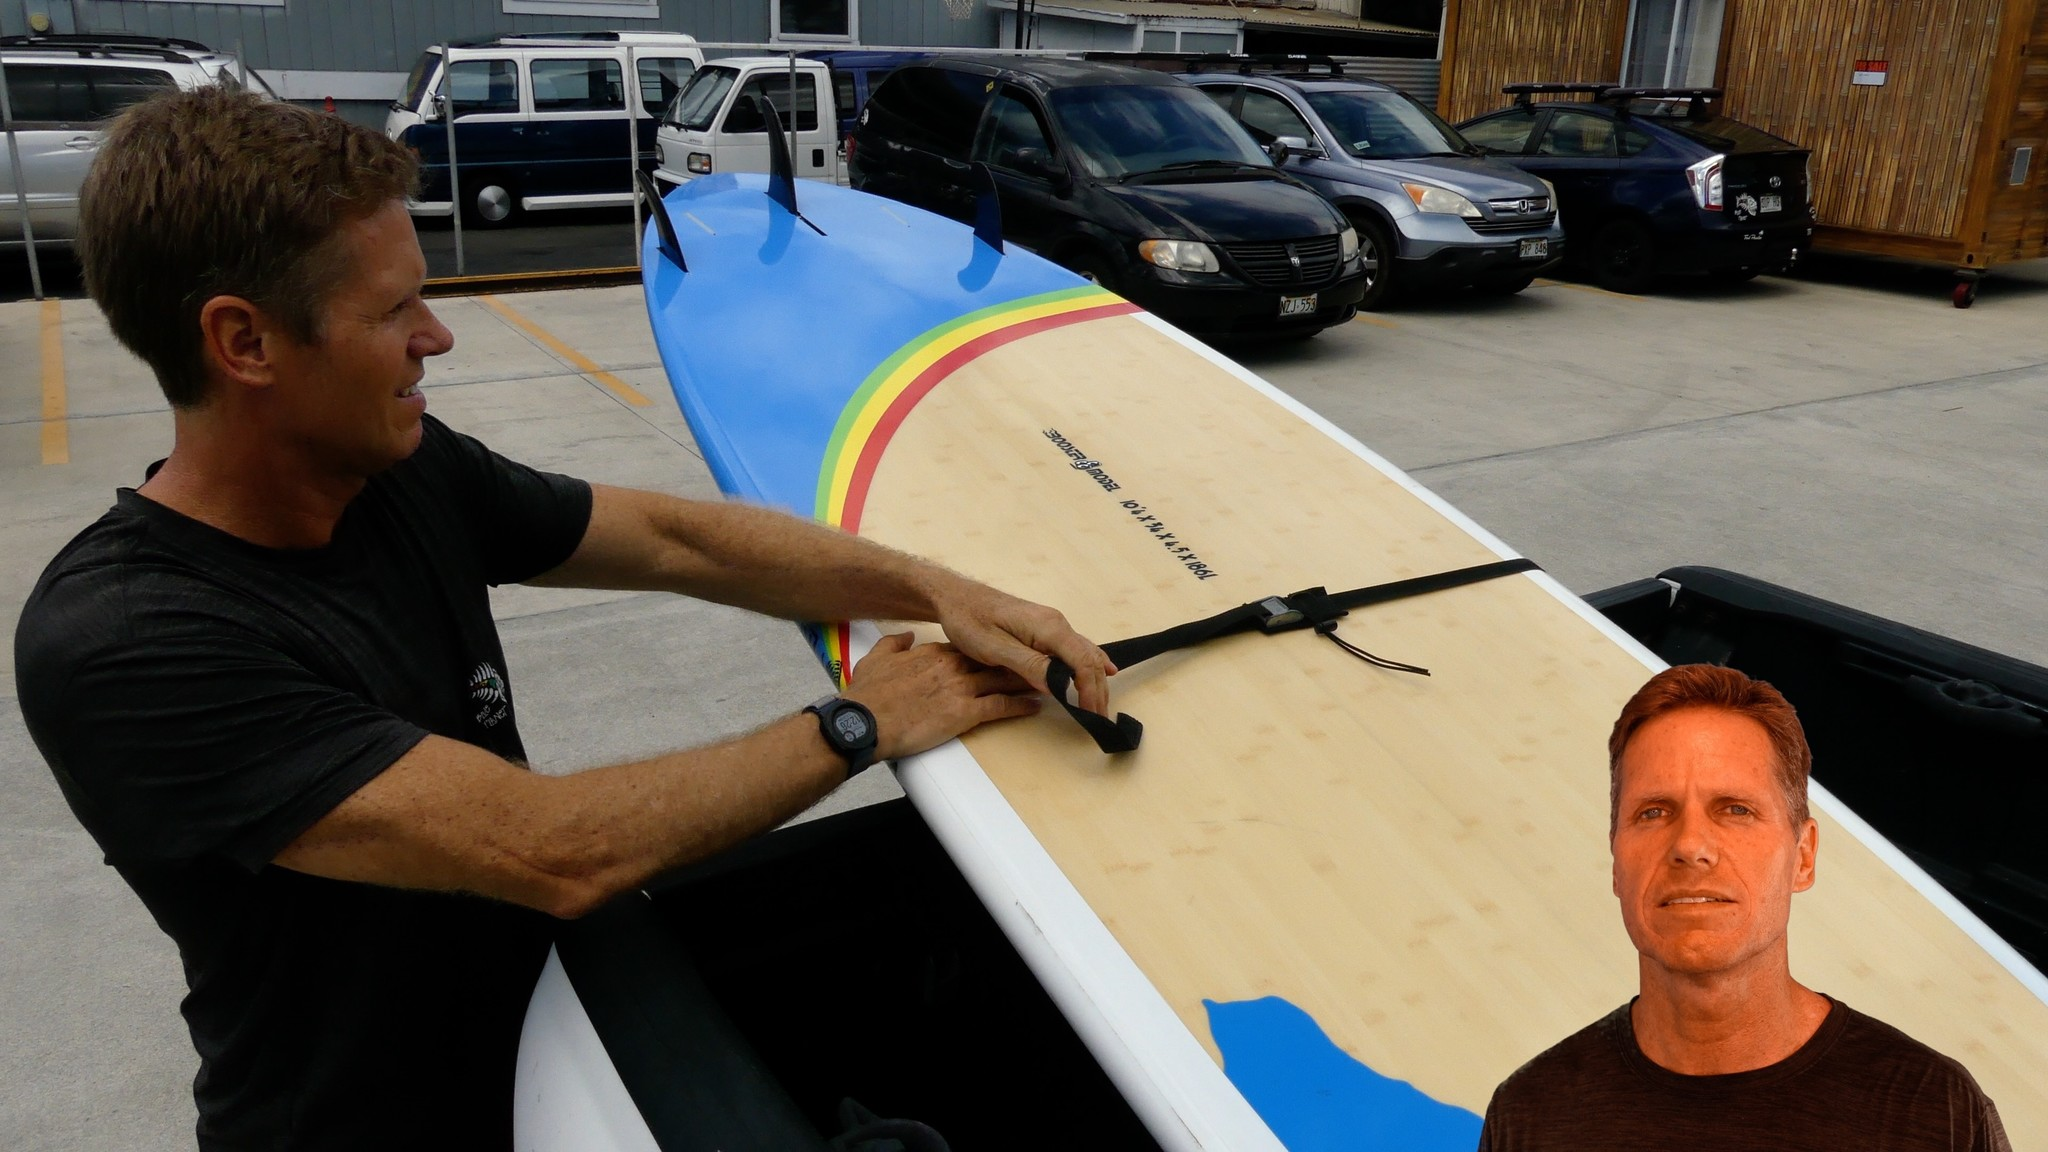 How To Strap Board To Car Blue Planet Surf Shop